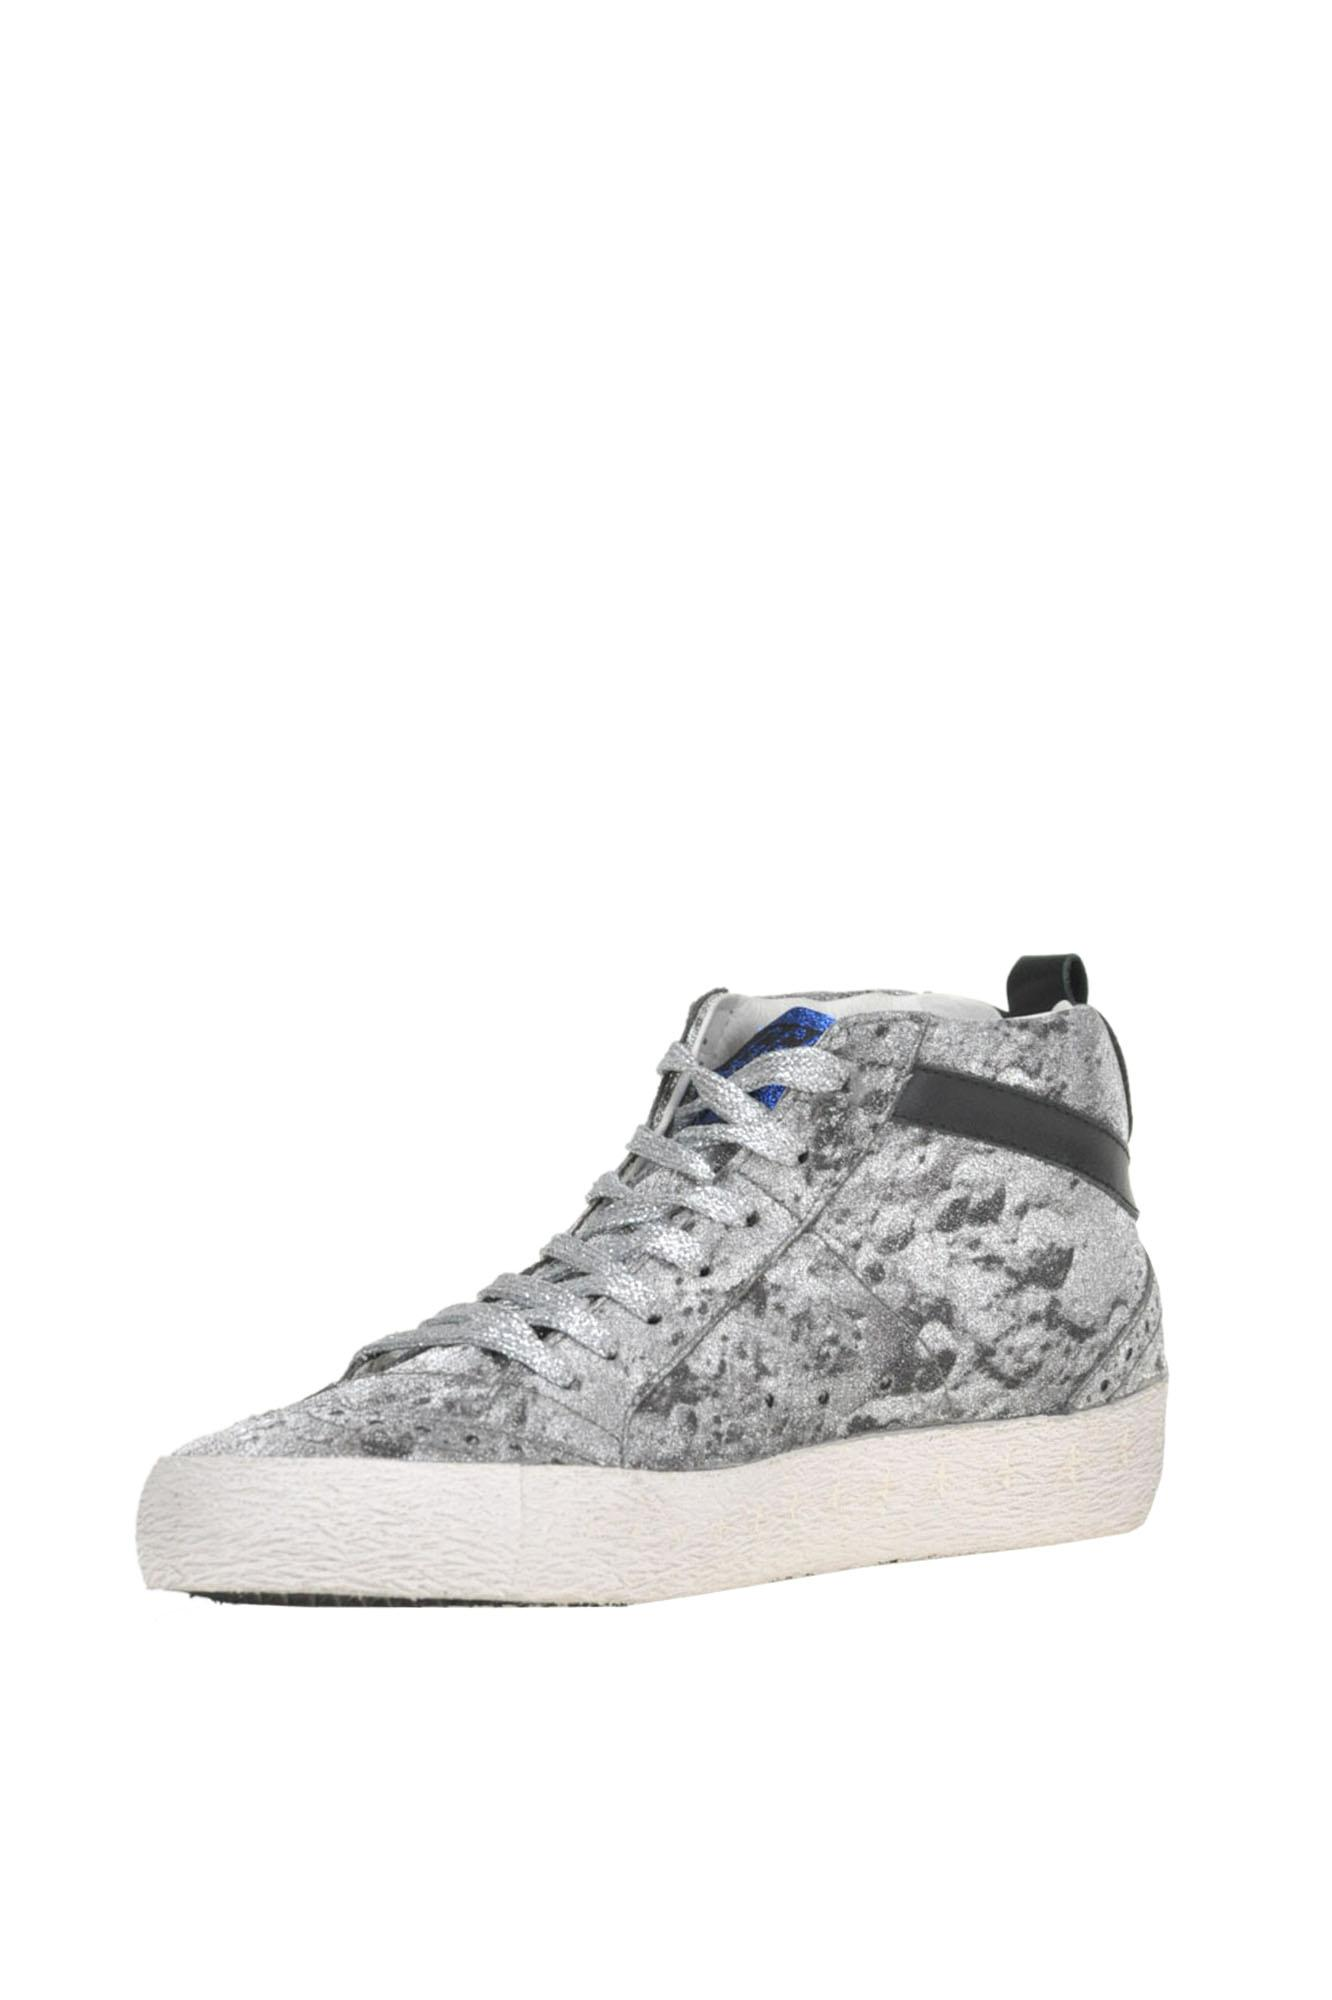 Golden Goose Deluxe Brand Leather Mid Star Limited Edition Sneakers in Silver (Metallic)